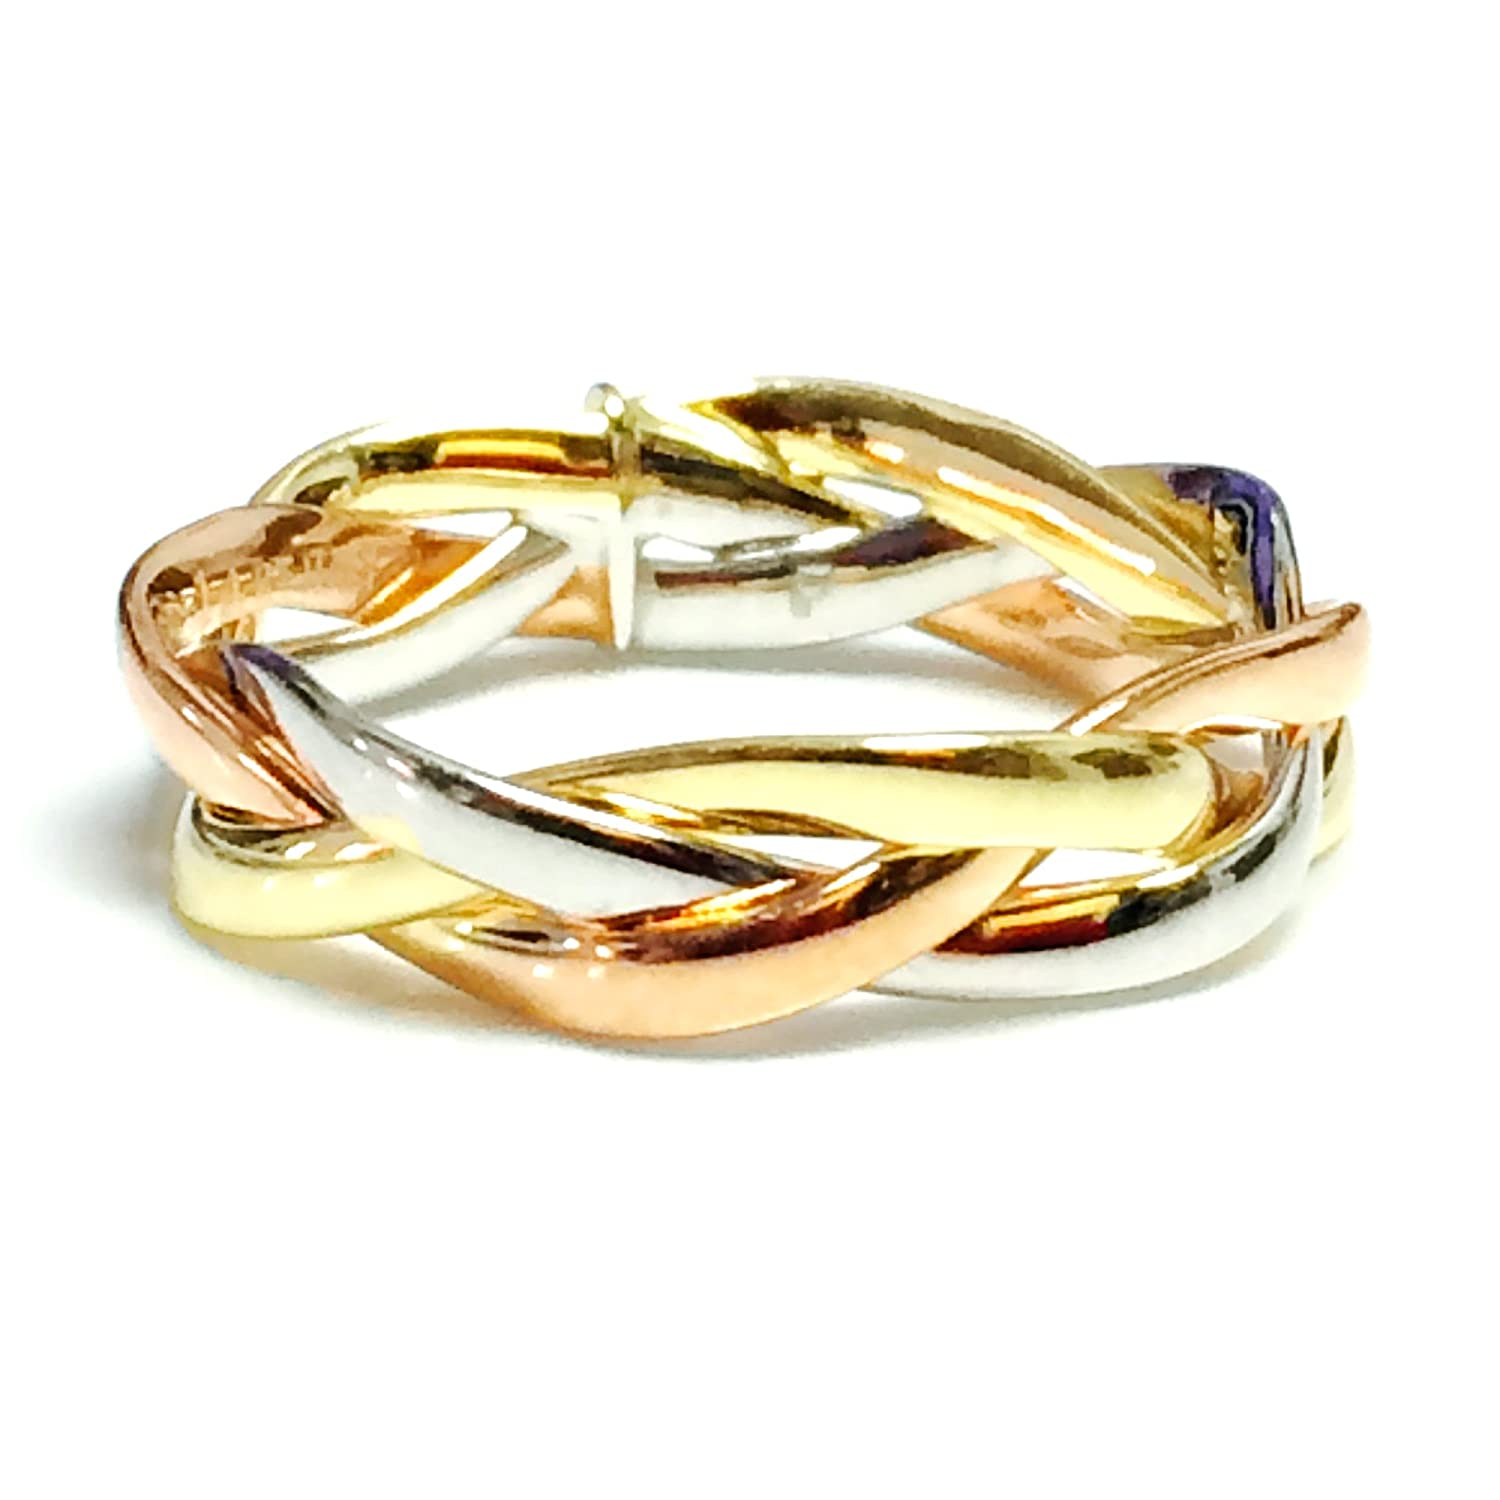 14K Tri-Color Gold Intertwined Braided Ring, 5mm JewelryAffairs